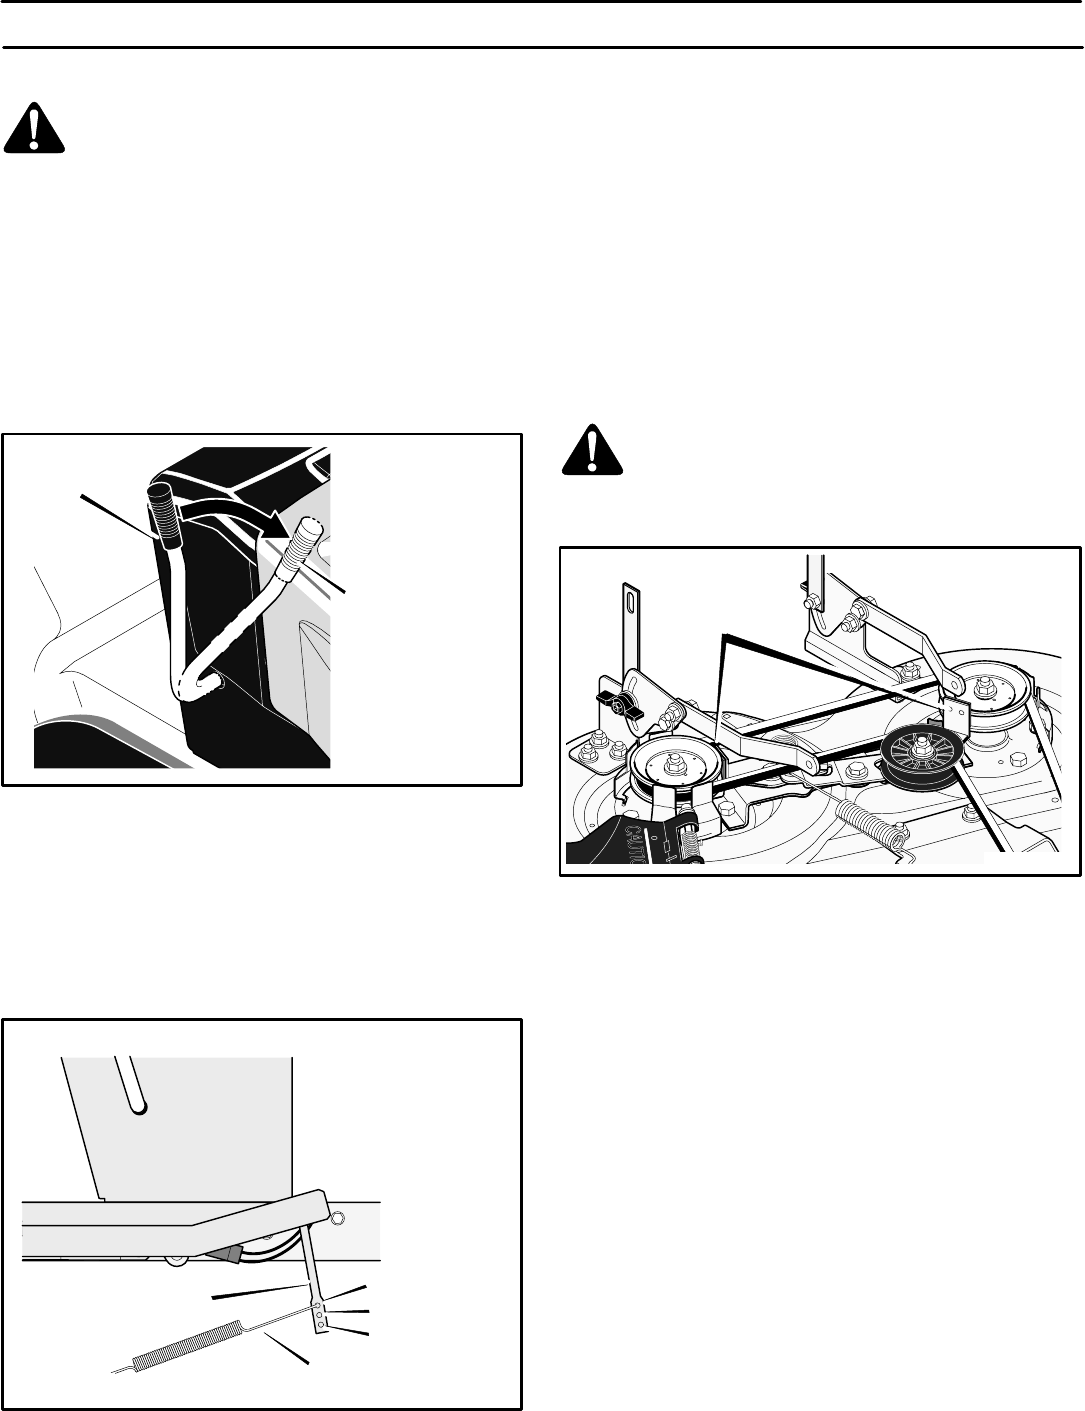 Page 23 of Murray Lawn Mower 425620x92B User Guide